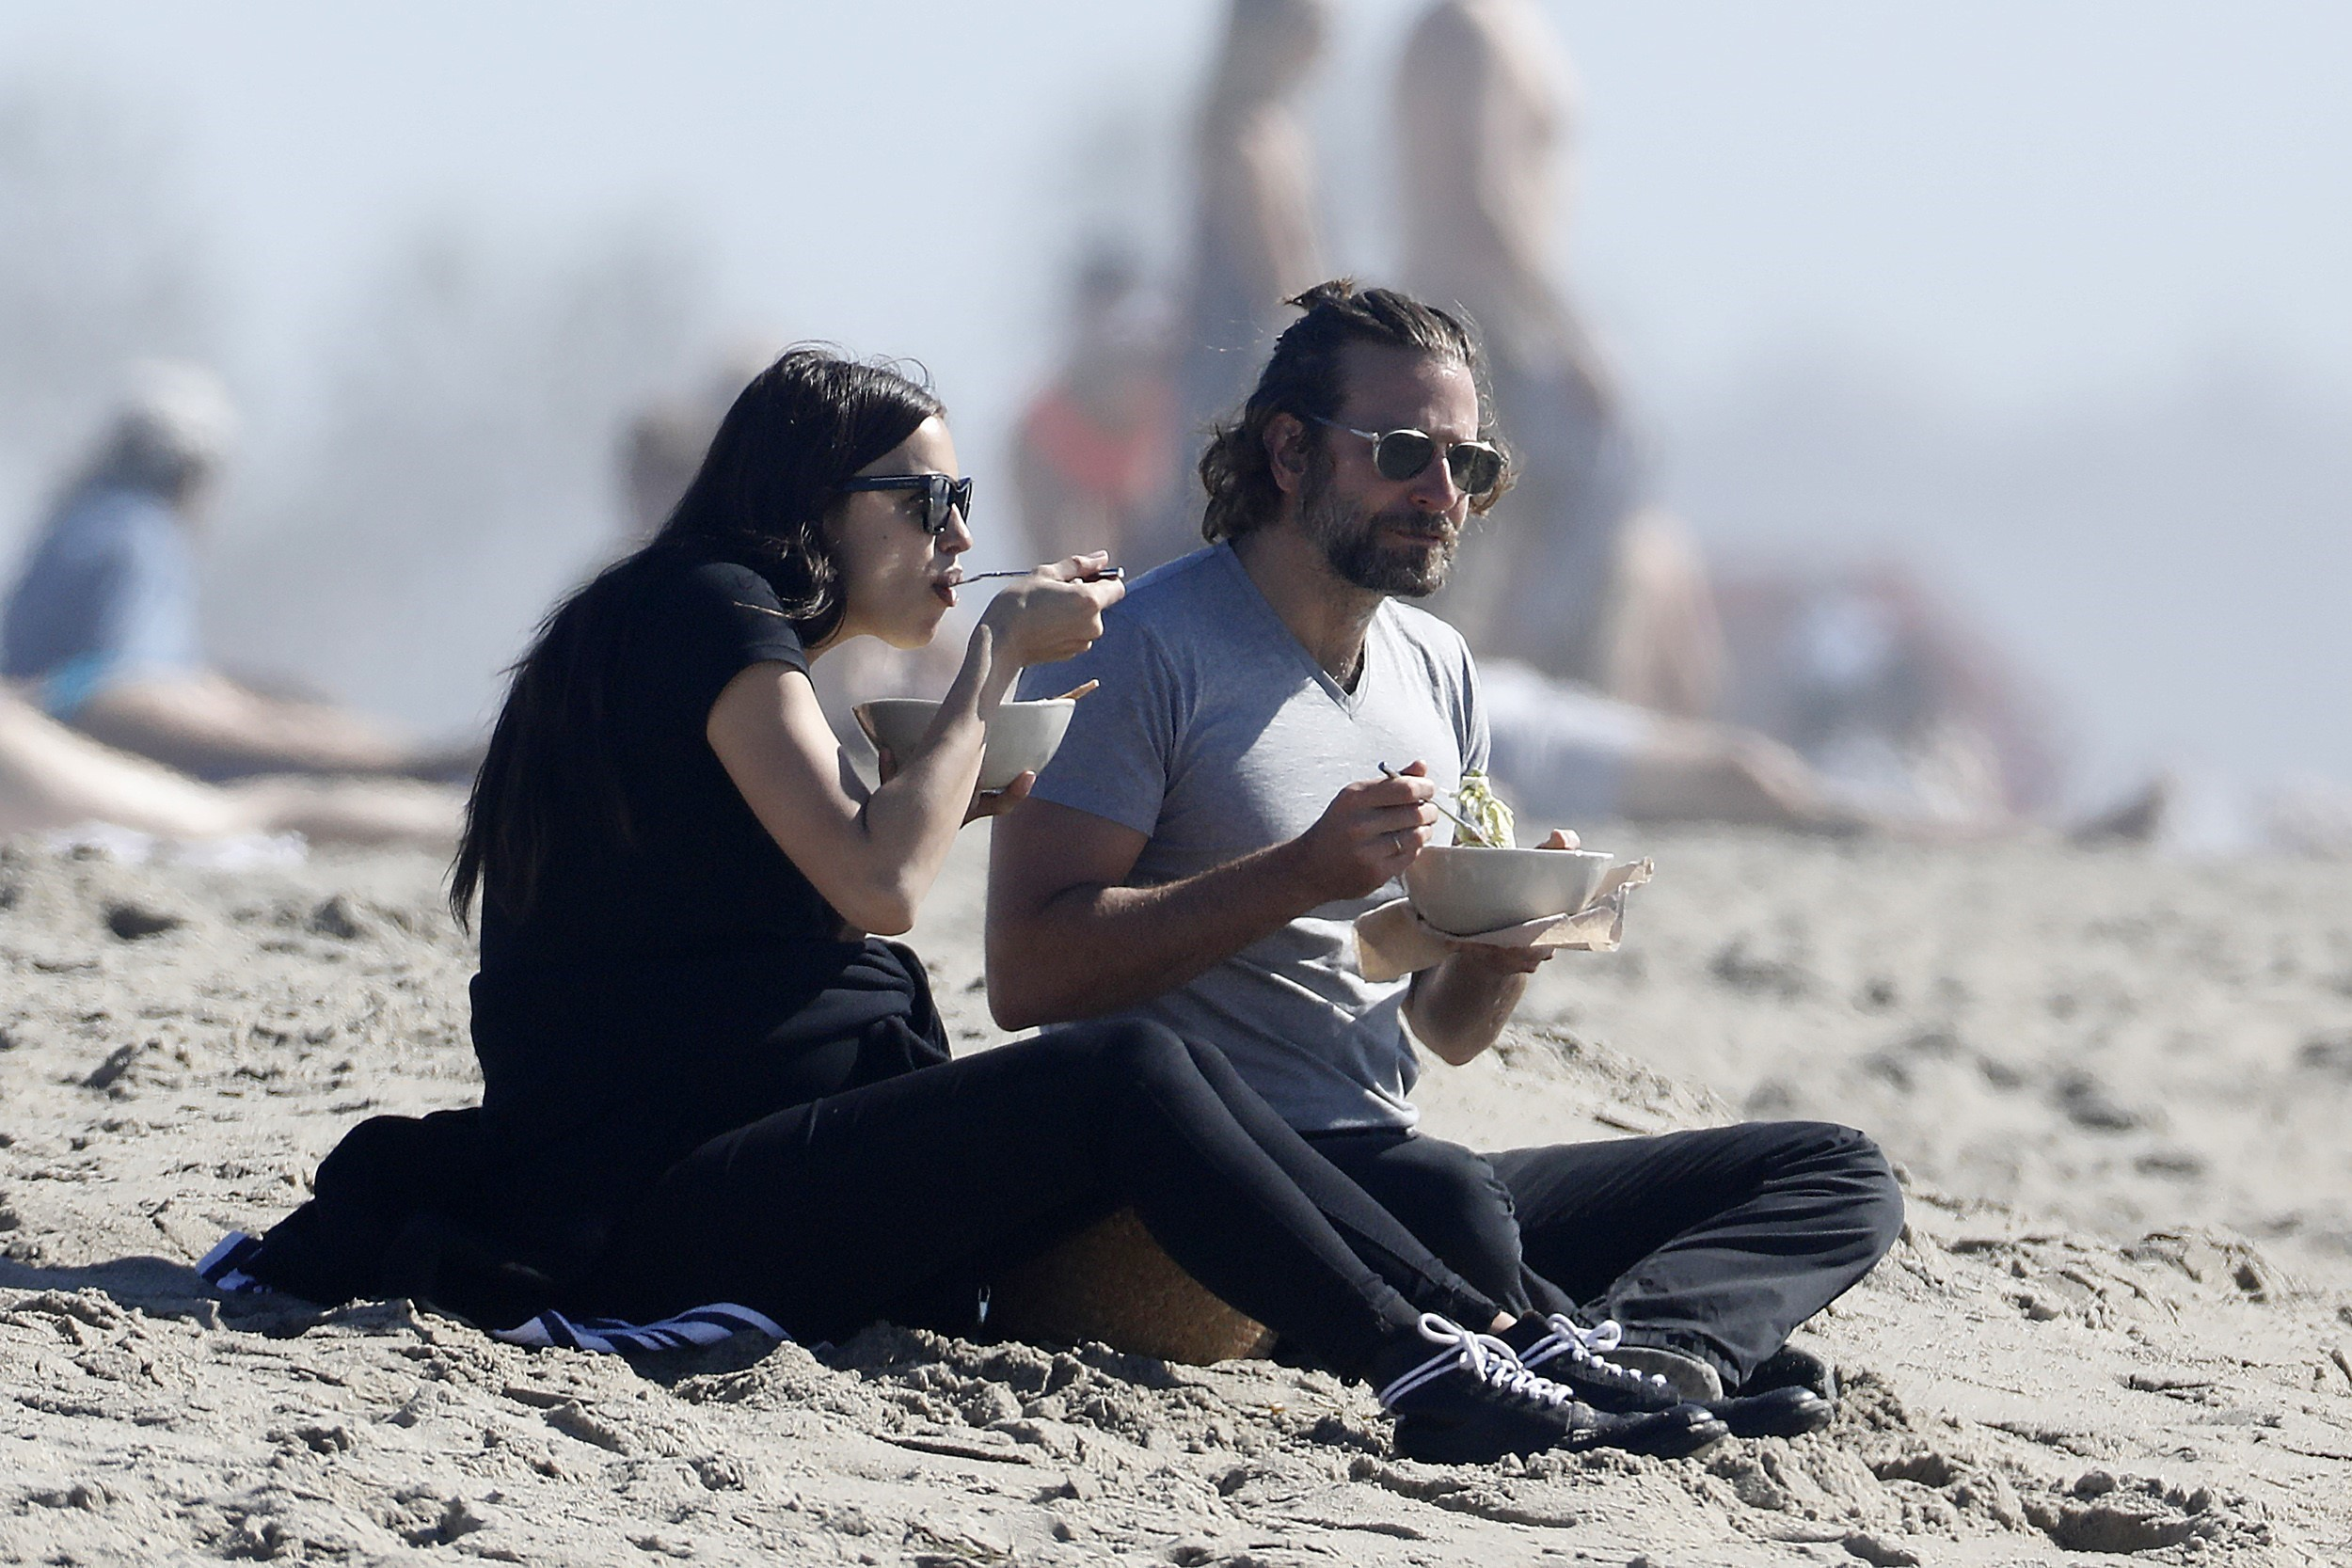 Photo © 2017 AKM GSI/The Grosby Group PREMIUM EXCLUSIVE Los Angeles, February 14, 2017. Bradley Cooper and Irina Shayk bring their own lunch to the beach and cuddle after enjoying their meal. The couple look sweet and in love as Bradley helps Irina stand up so they can leave hand in hand.